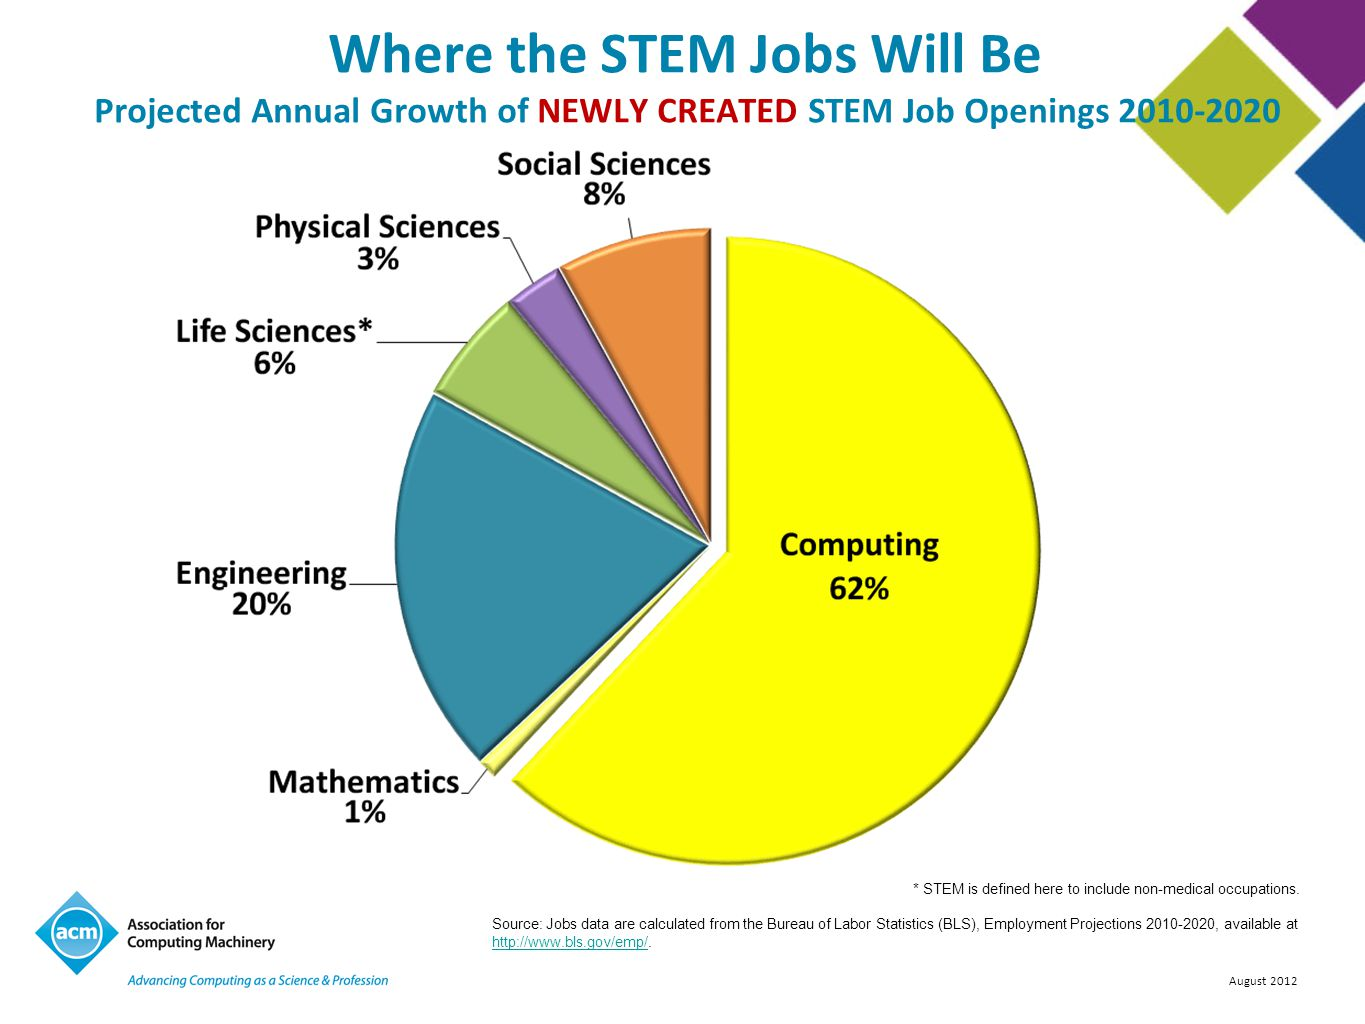 Where the STEM Jobs Will Be Projected Annual Growth of NEWLY CREATED STEM Job Openings 2010-2020